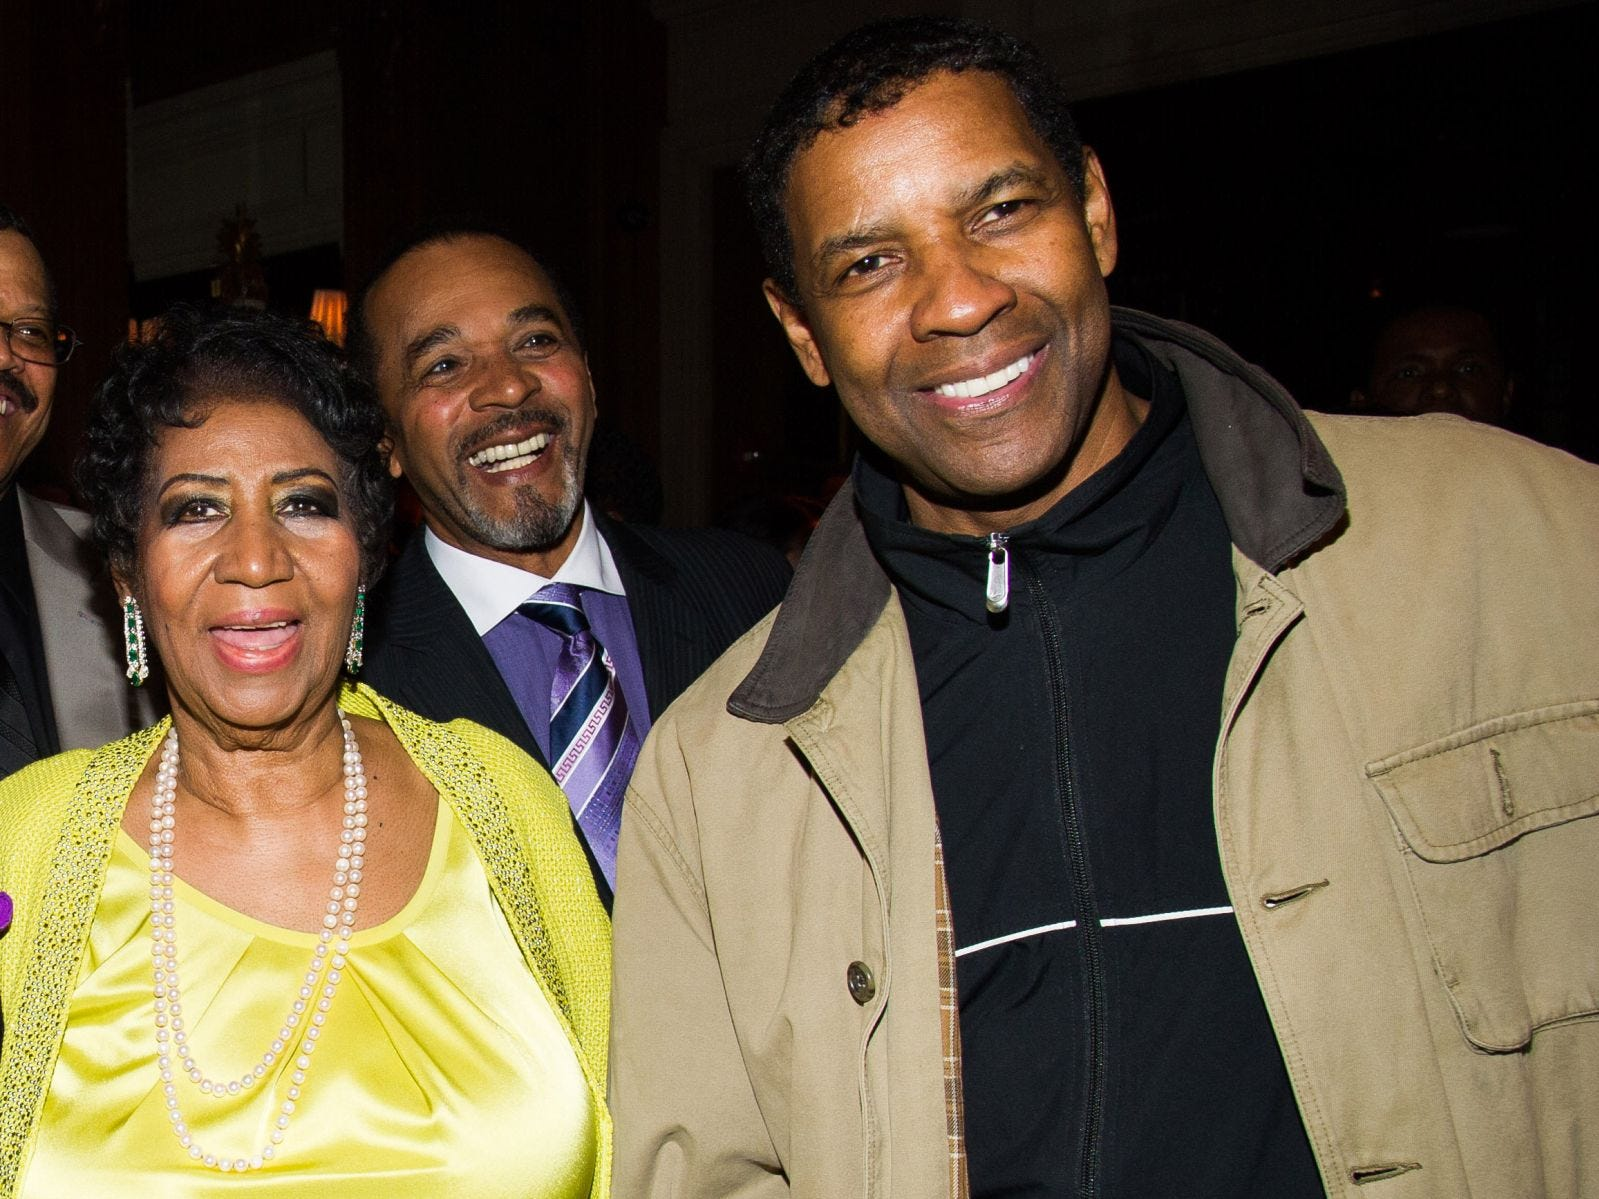 Aretha Franklin and Denzel Washington with Clifton Oliver, rear, attend her 72nd birthday celebration on Saturday, March 22, 2014 in New York.